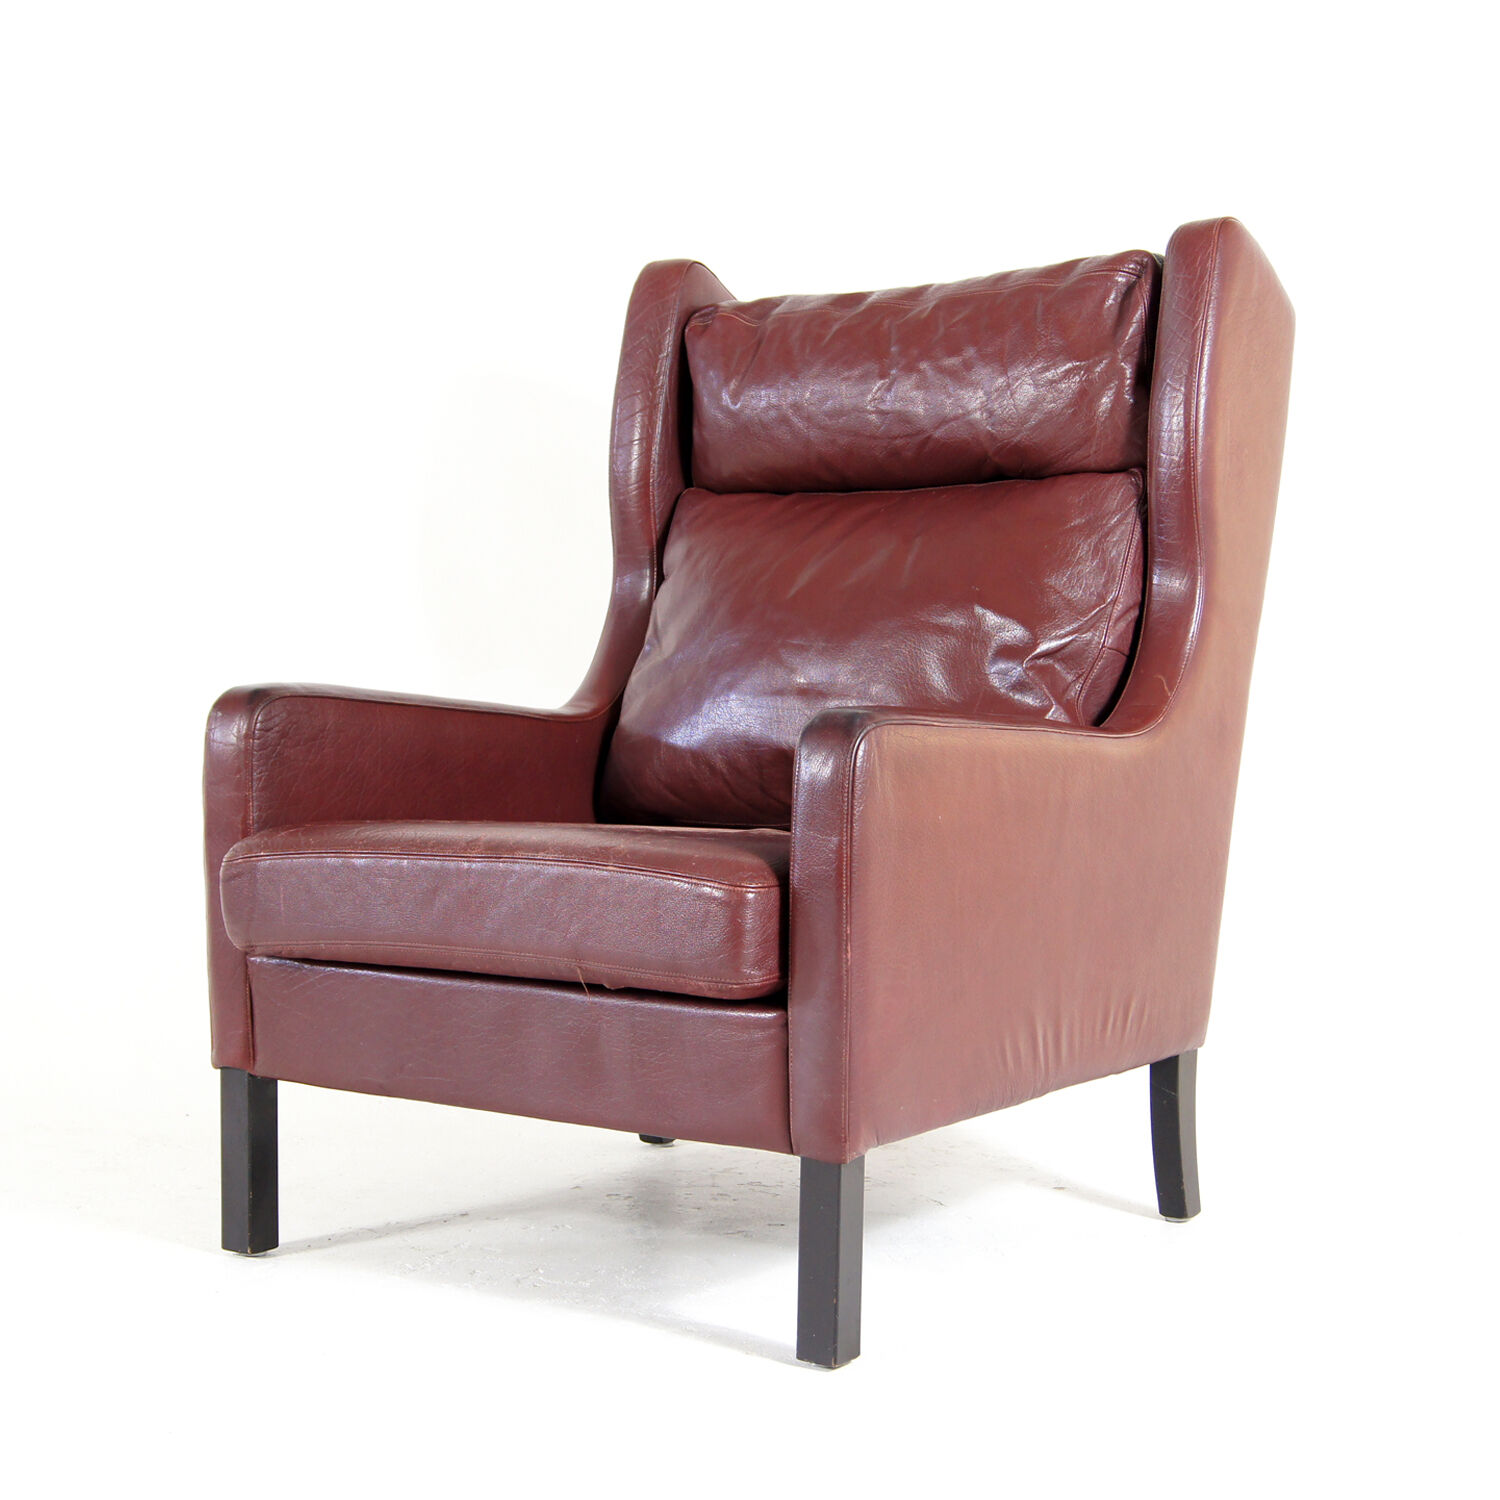 Retro Vintage Danish Modern Thams Leather Wing Back Lounge Armchair 60s 70s